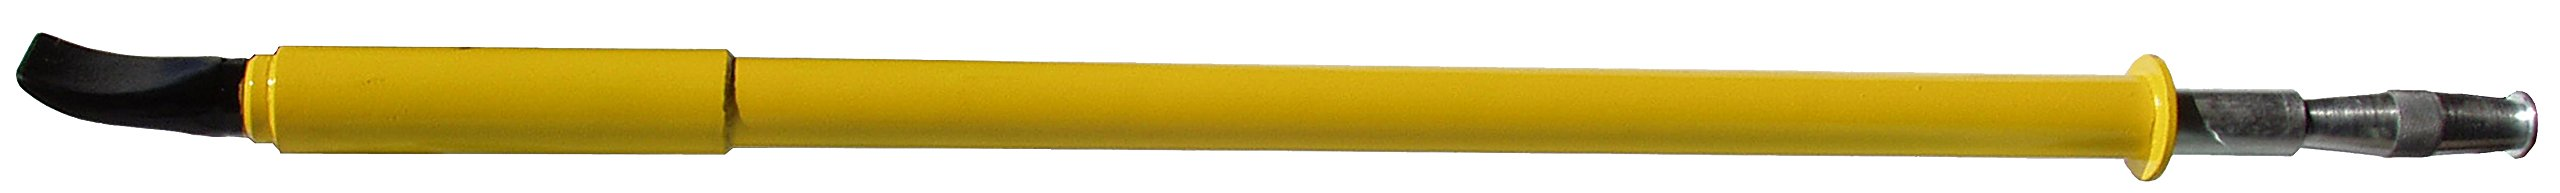 Esco 70150 Slide Hammer Tire Bead Breaker by Esco